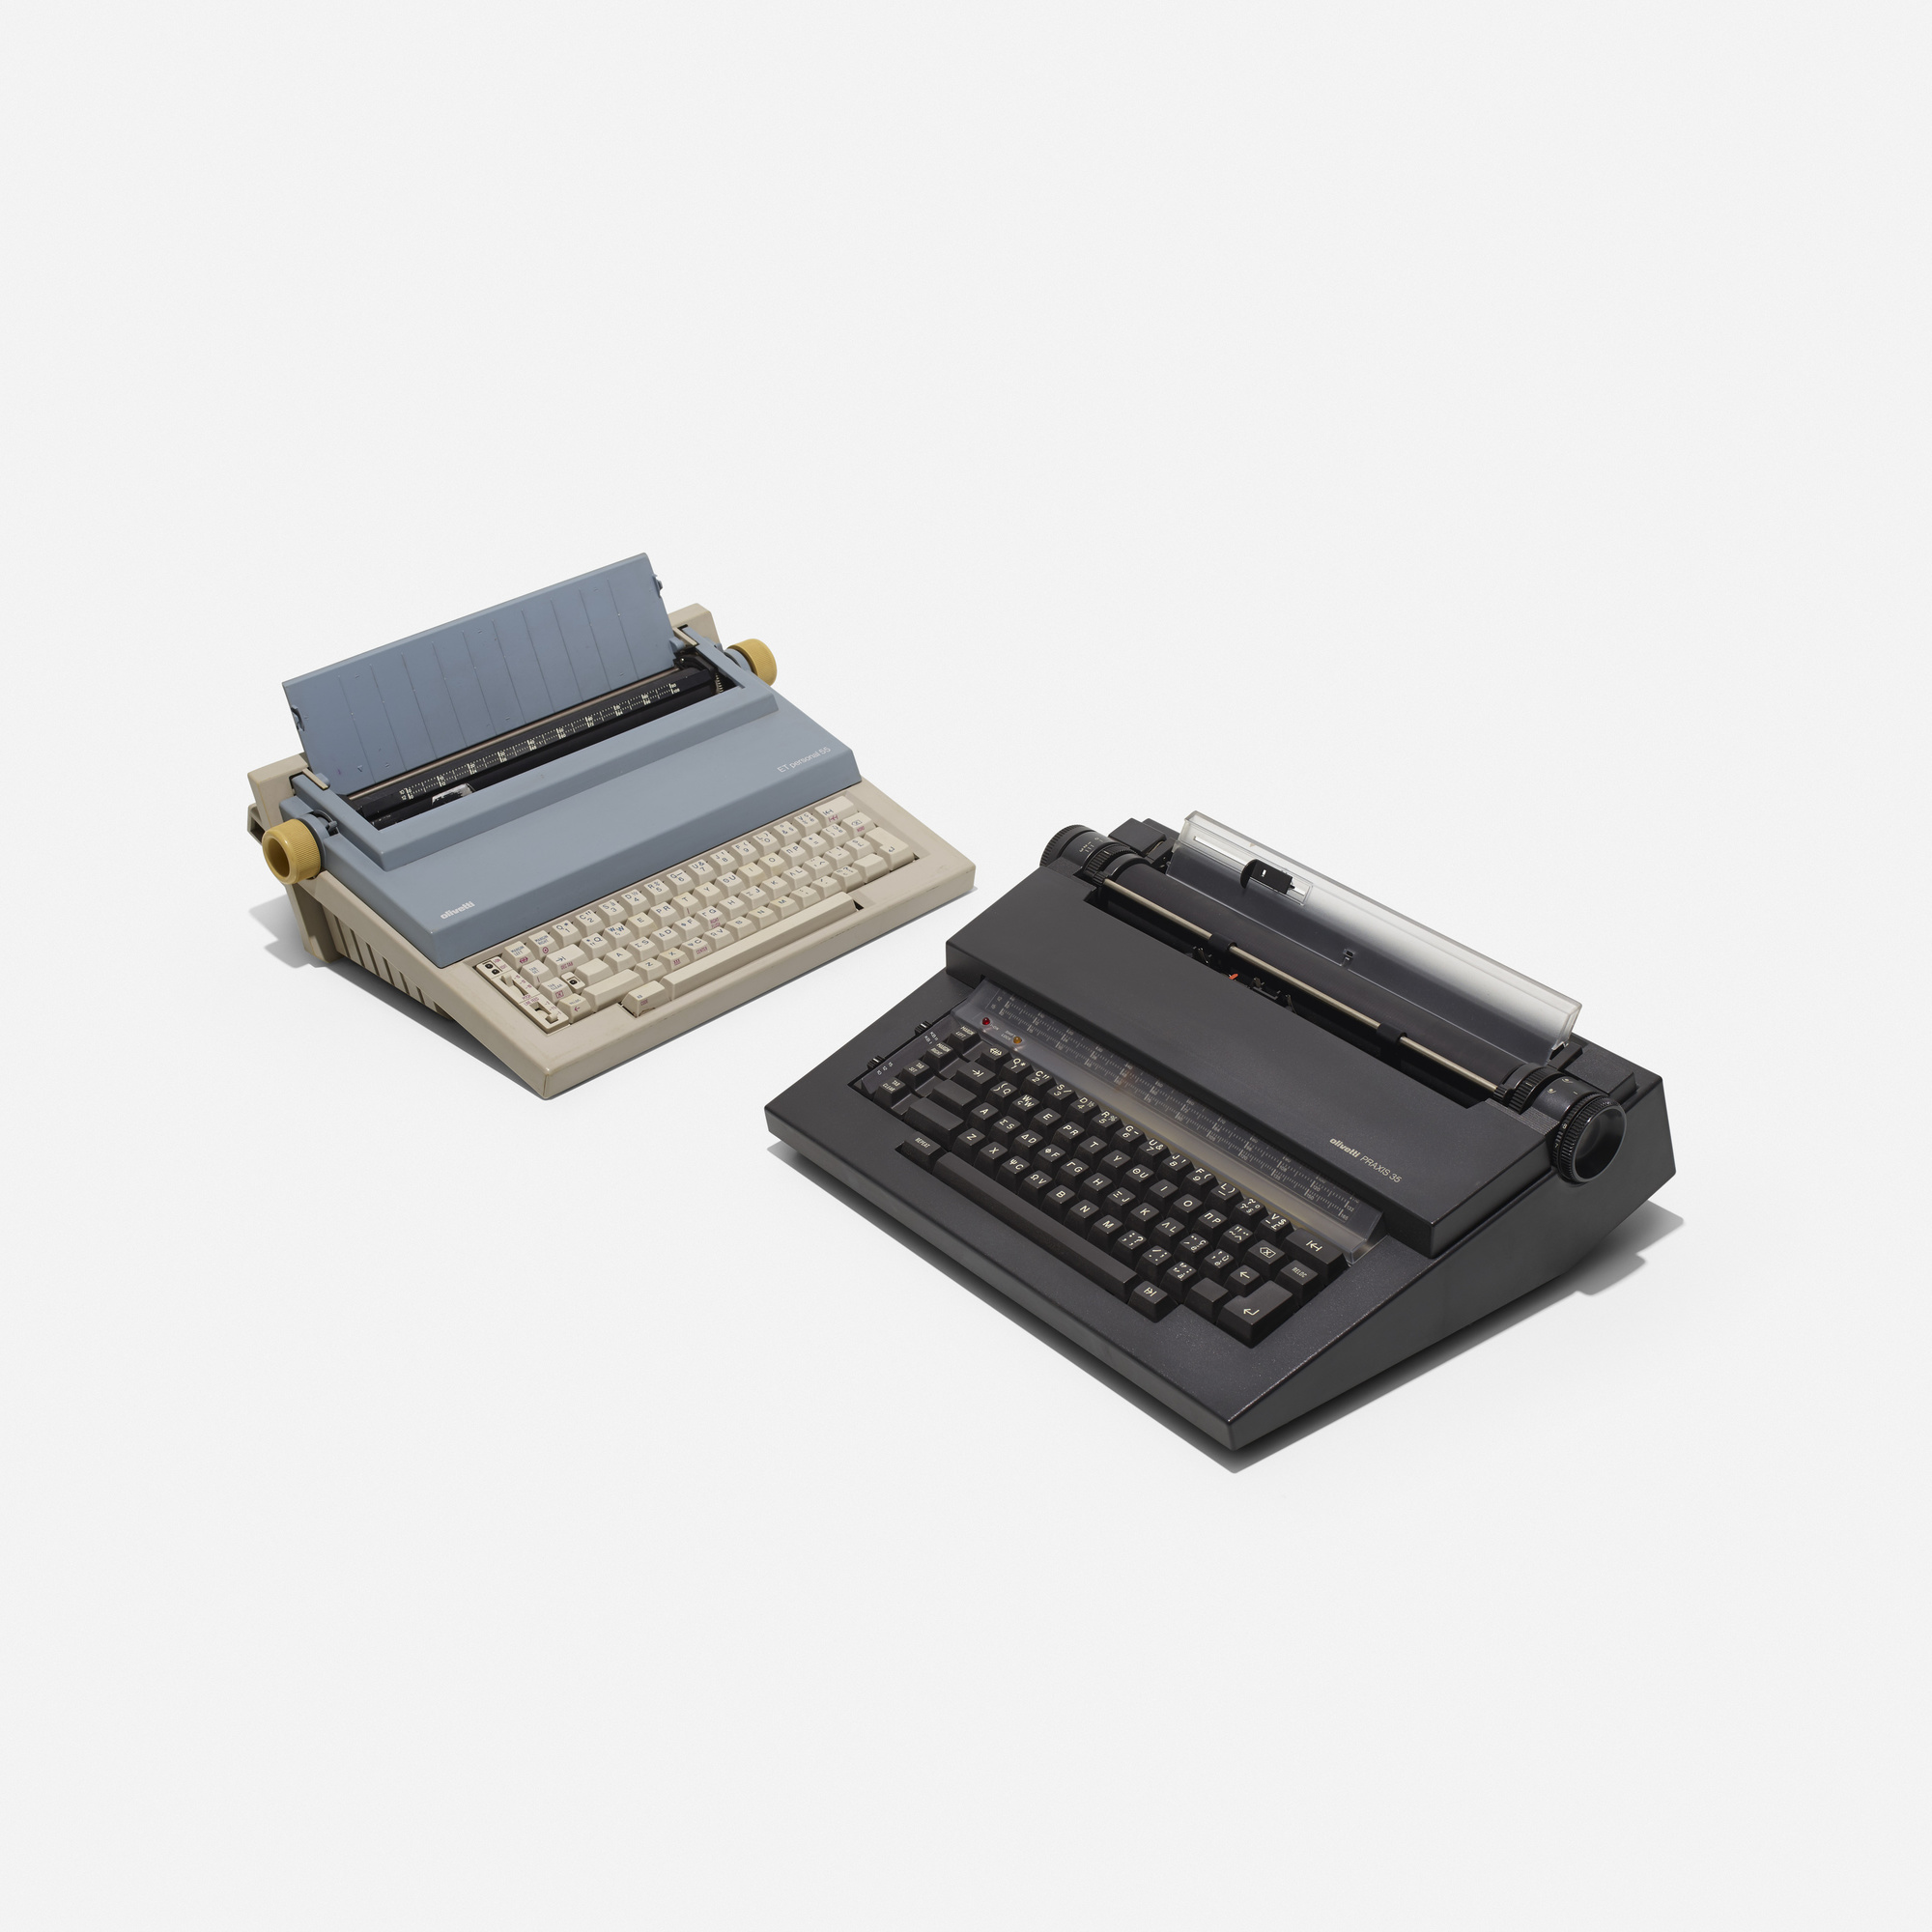 289: Mario Bellini / ET Personal 55 and Praxis typewriters (1 of 1)